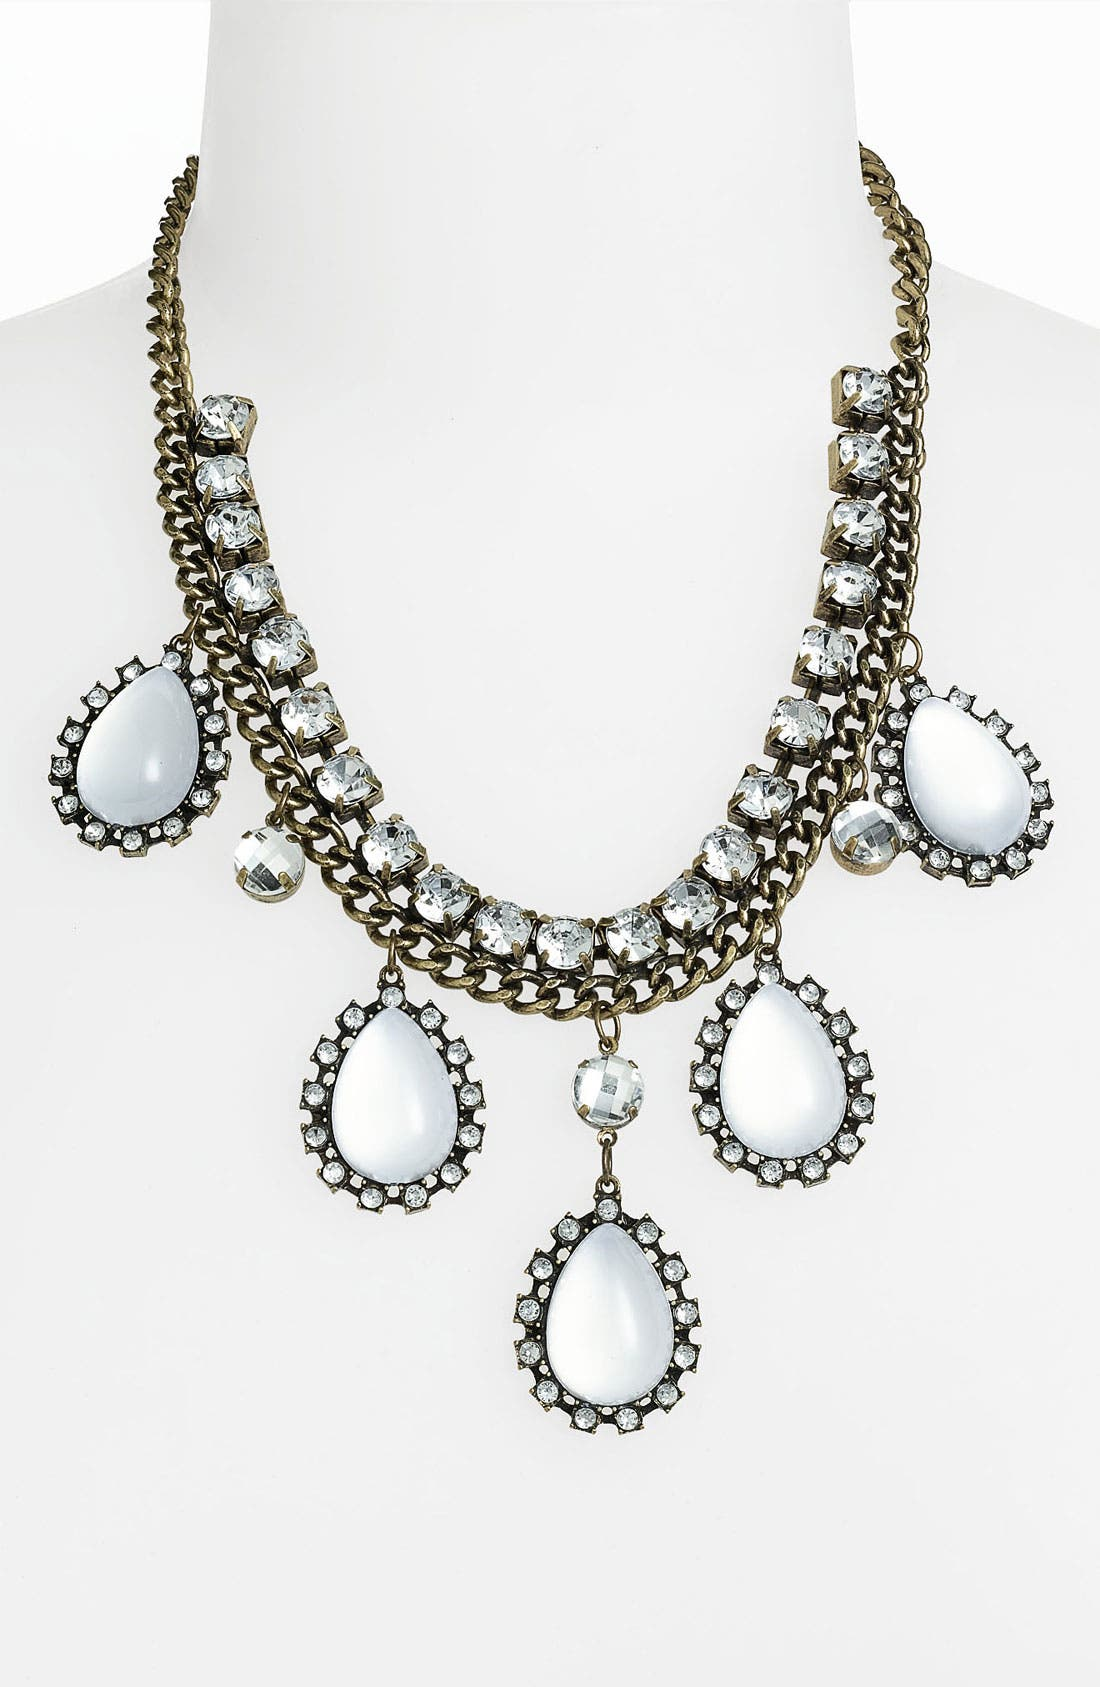 Alternate Image 1 Selected - Panacea Antique Gold & Crystal Necklace